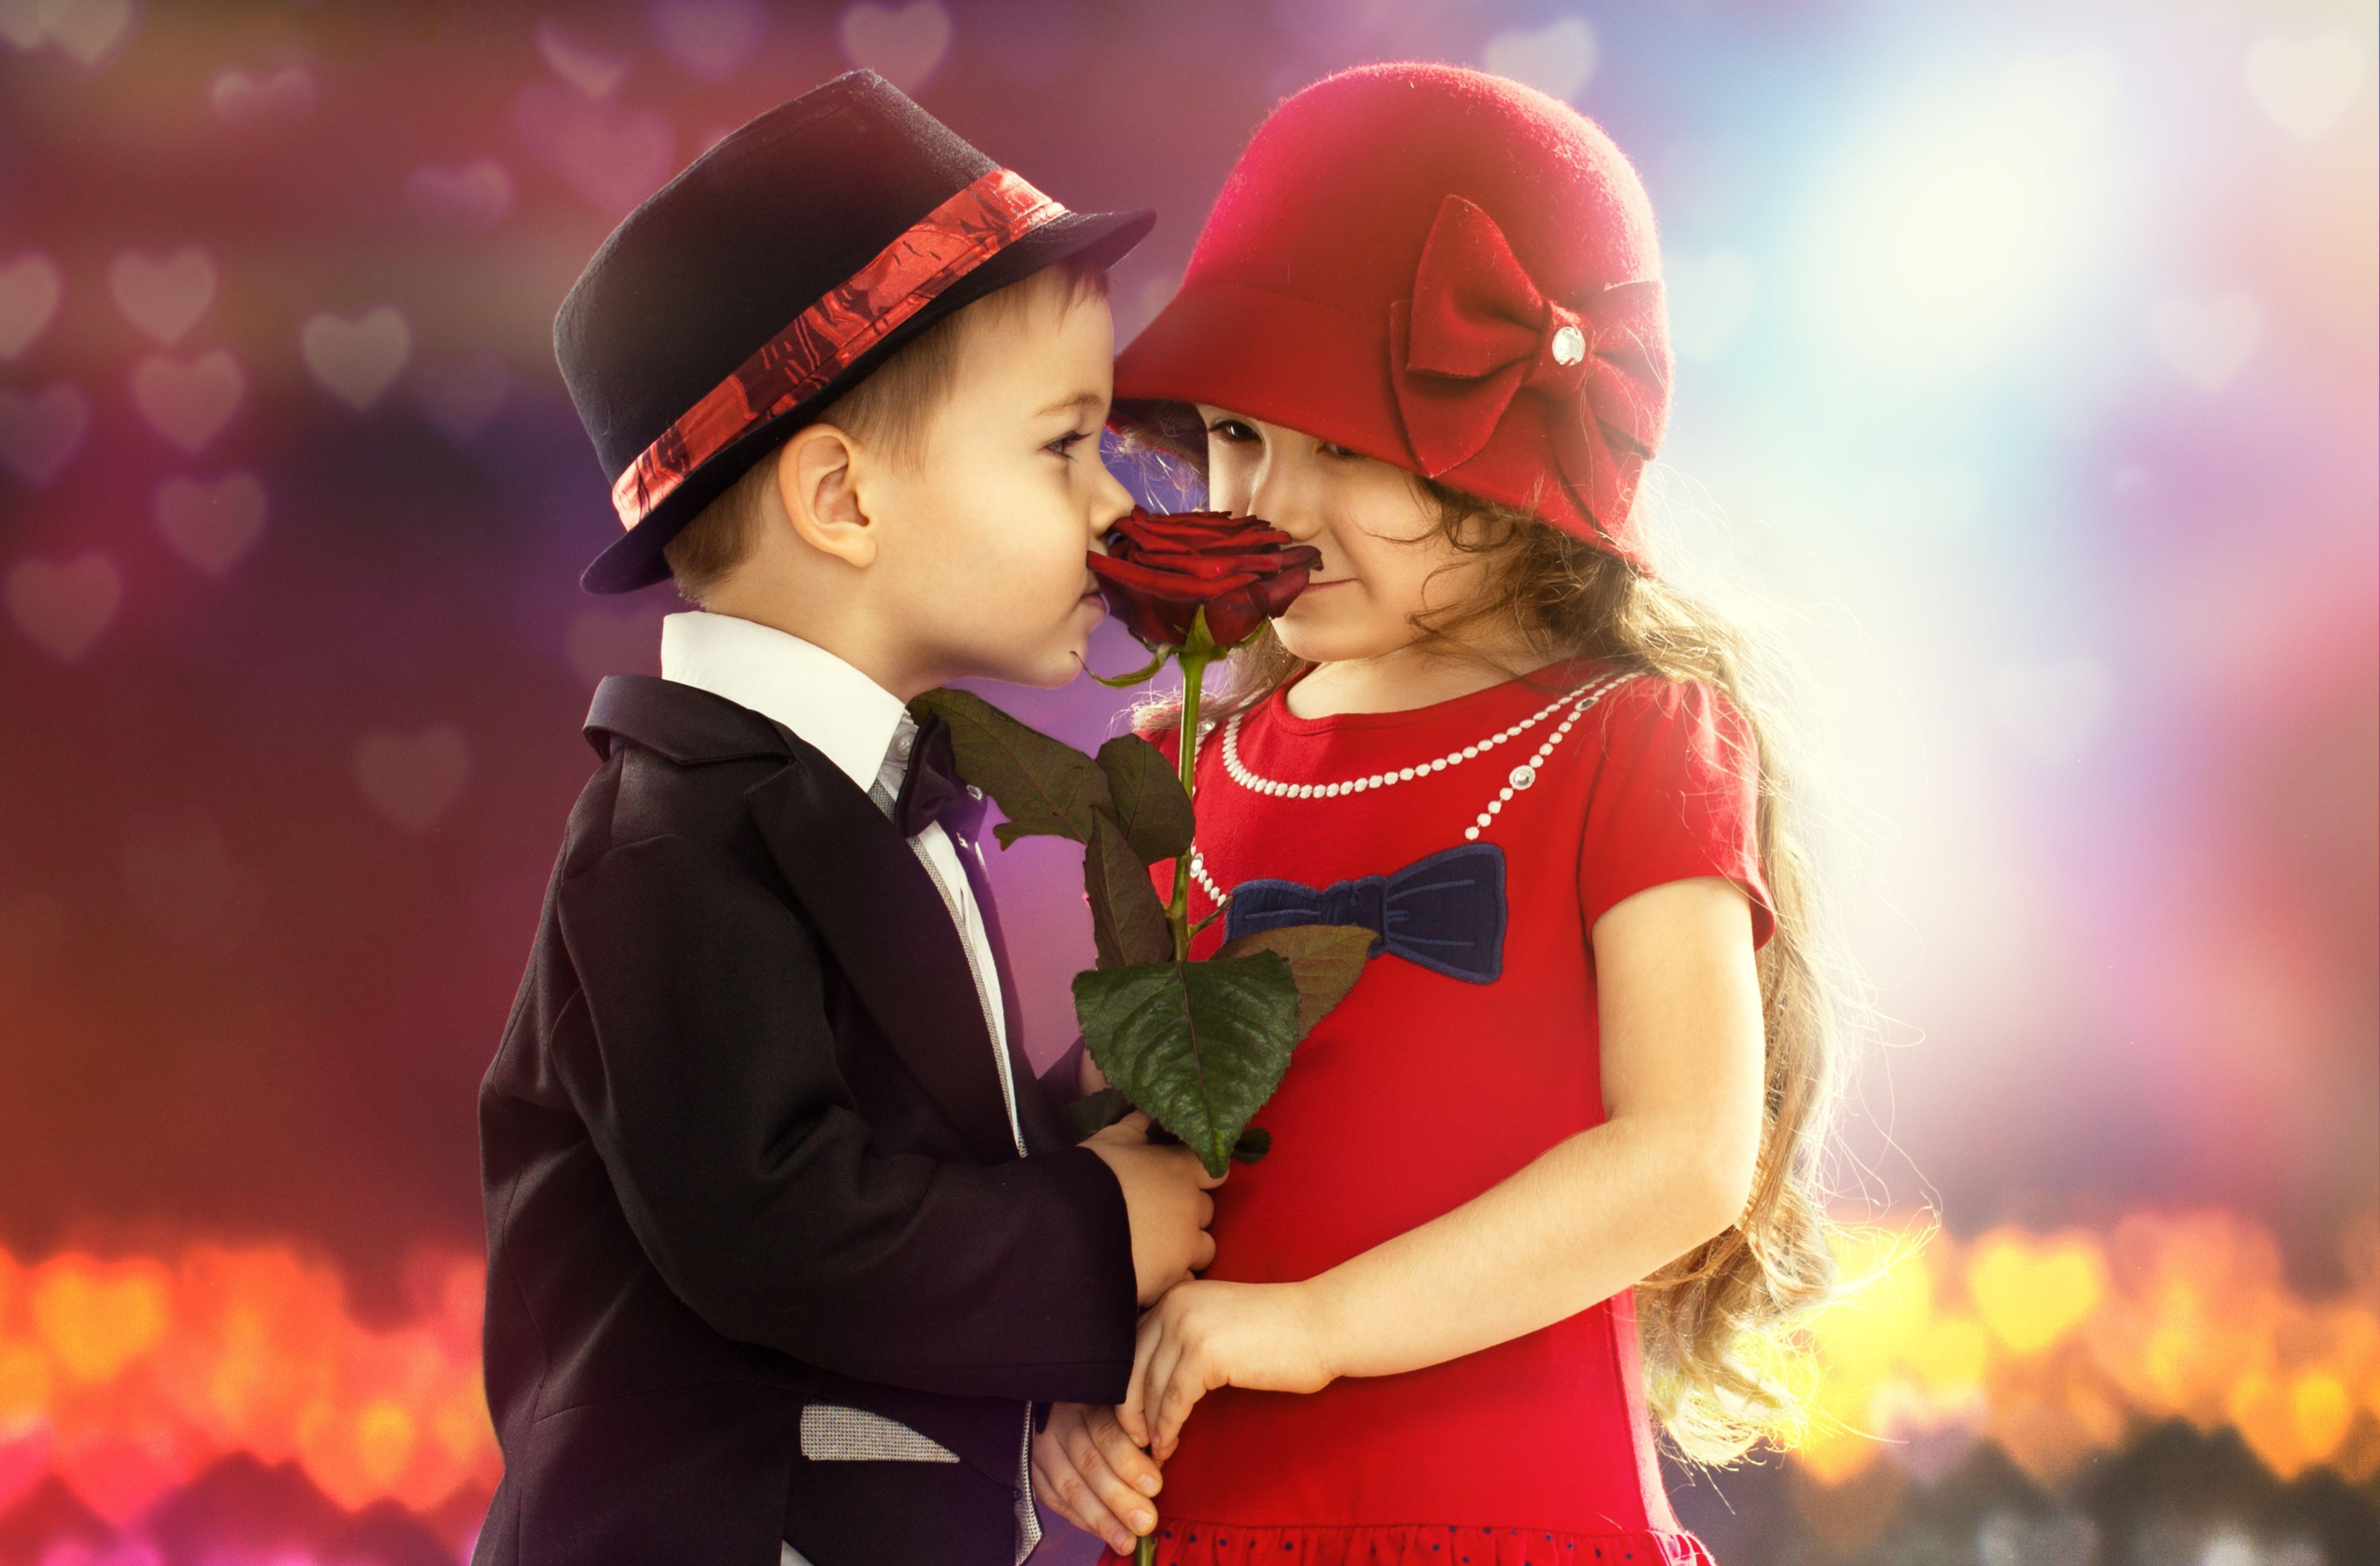 Boy and girl wallpapers wallpaper cave - Boy with rose wallpaper ...